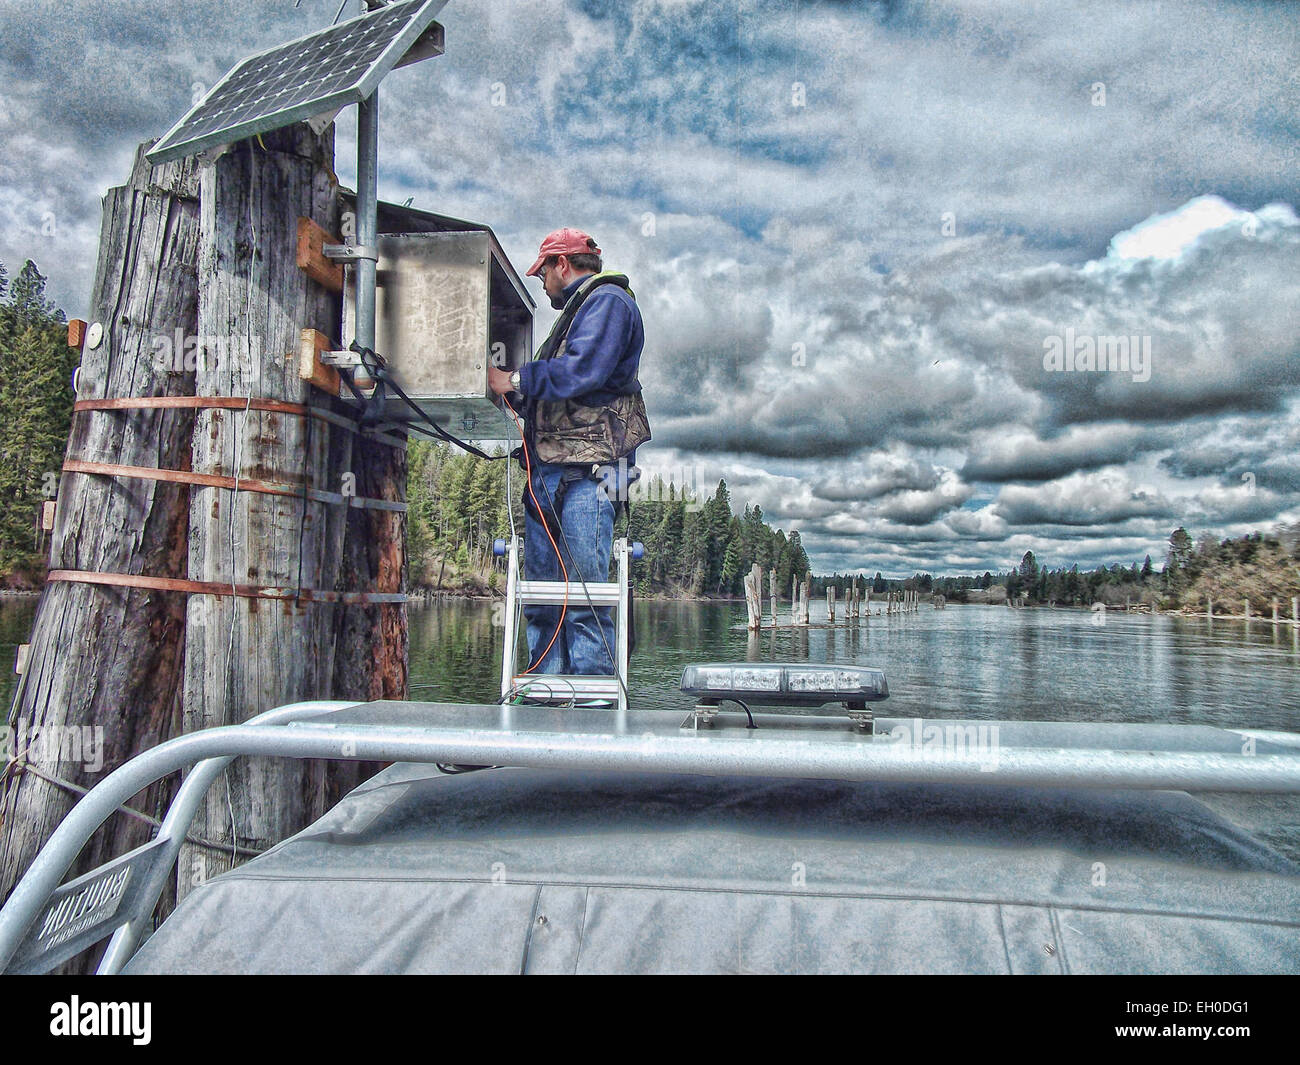 hyrdotech Pete Elliot, USGS, building a streamgage on the Coeur d'Alene River in Idaho - Stock Image